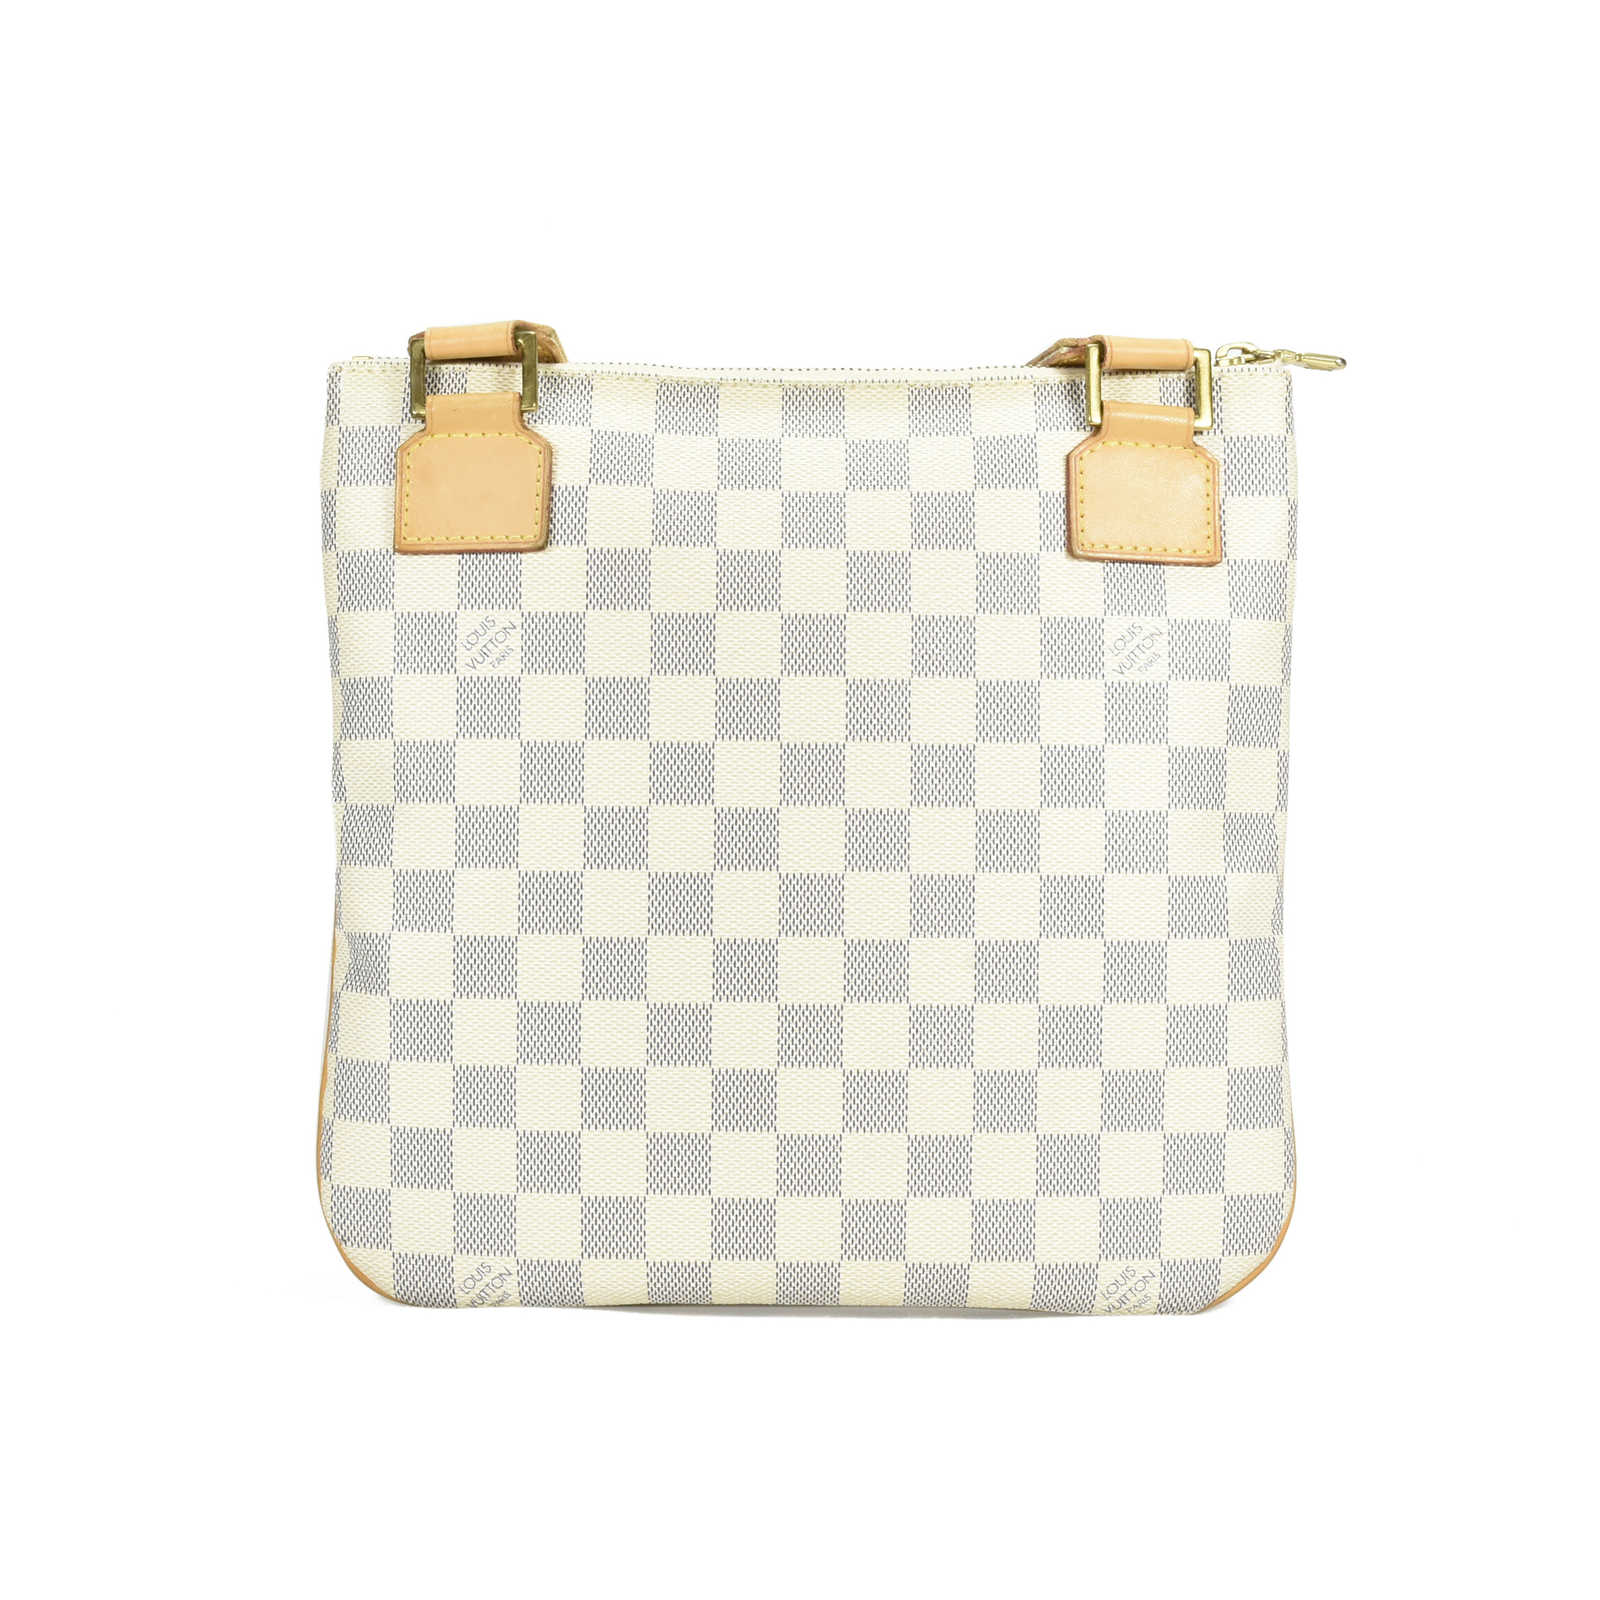 dd103c04b5 ... Authentic Second Hand Louis Vuitton Damier Azur Pochette Bosphore  Crossbody Bag (PSS-400- ...